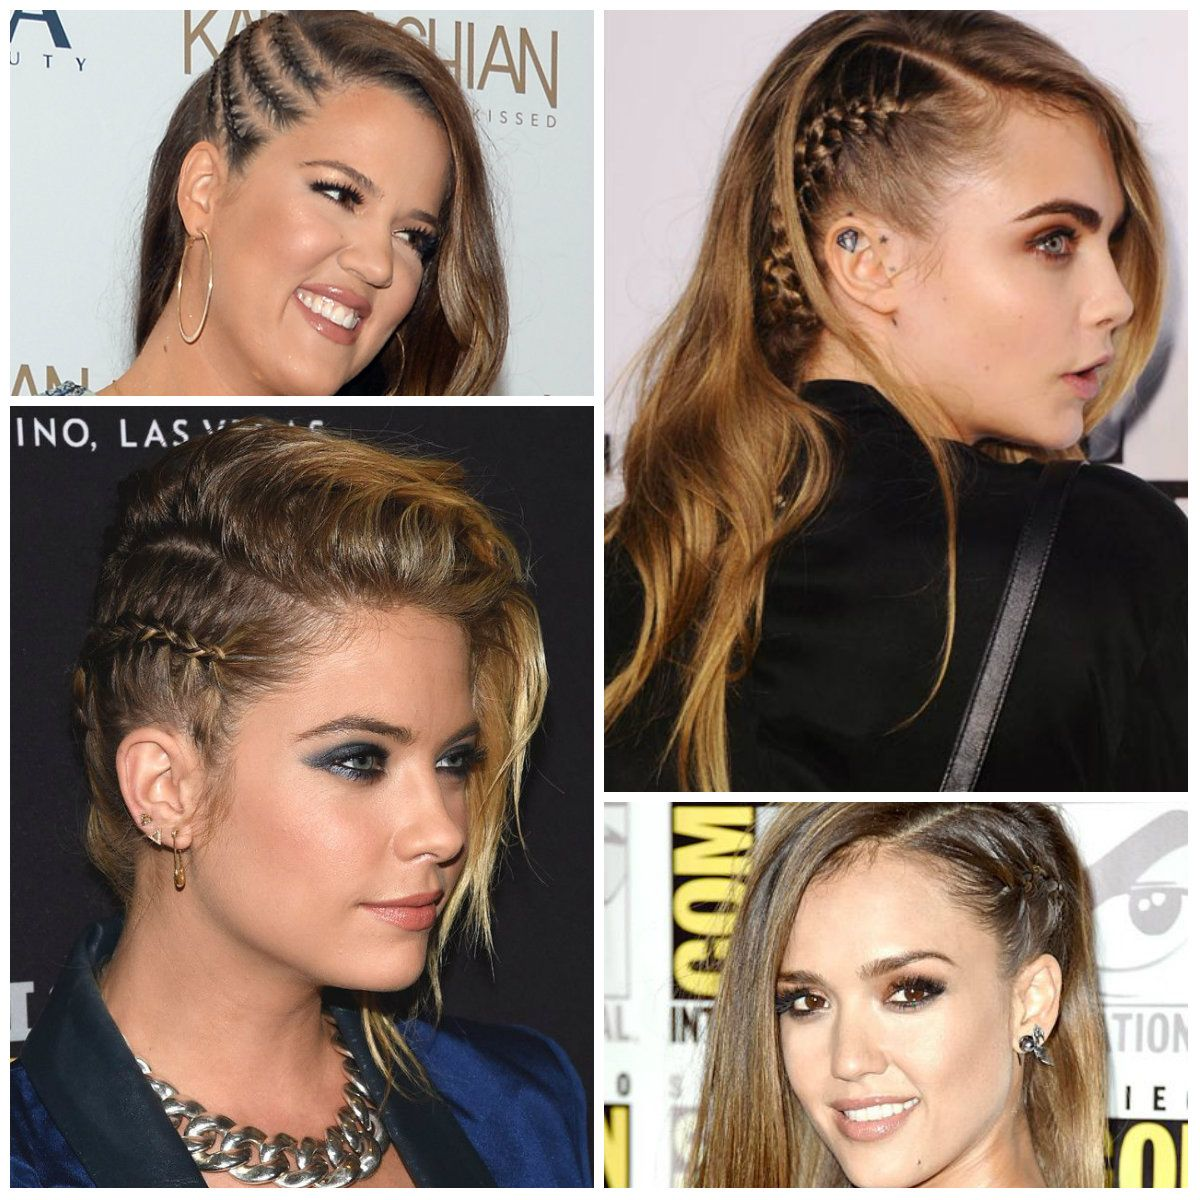 Pin By Tsr Services Trendy On Hairstyles To Try: 2016 Celebrities With Faux Undercut Braid Hairstyles